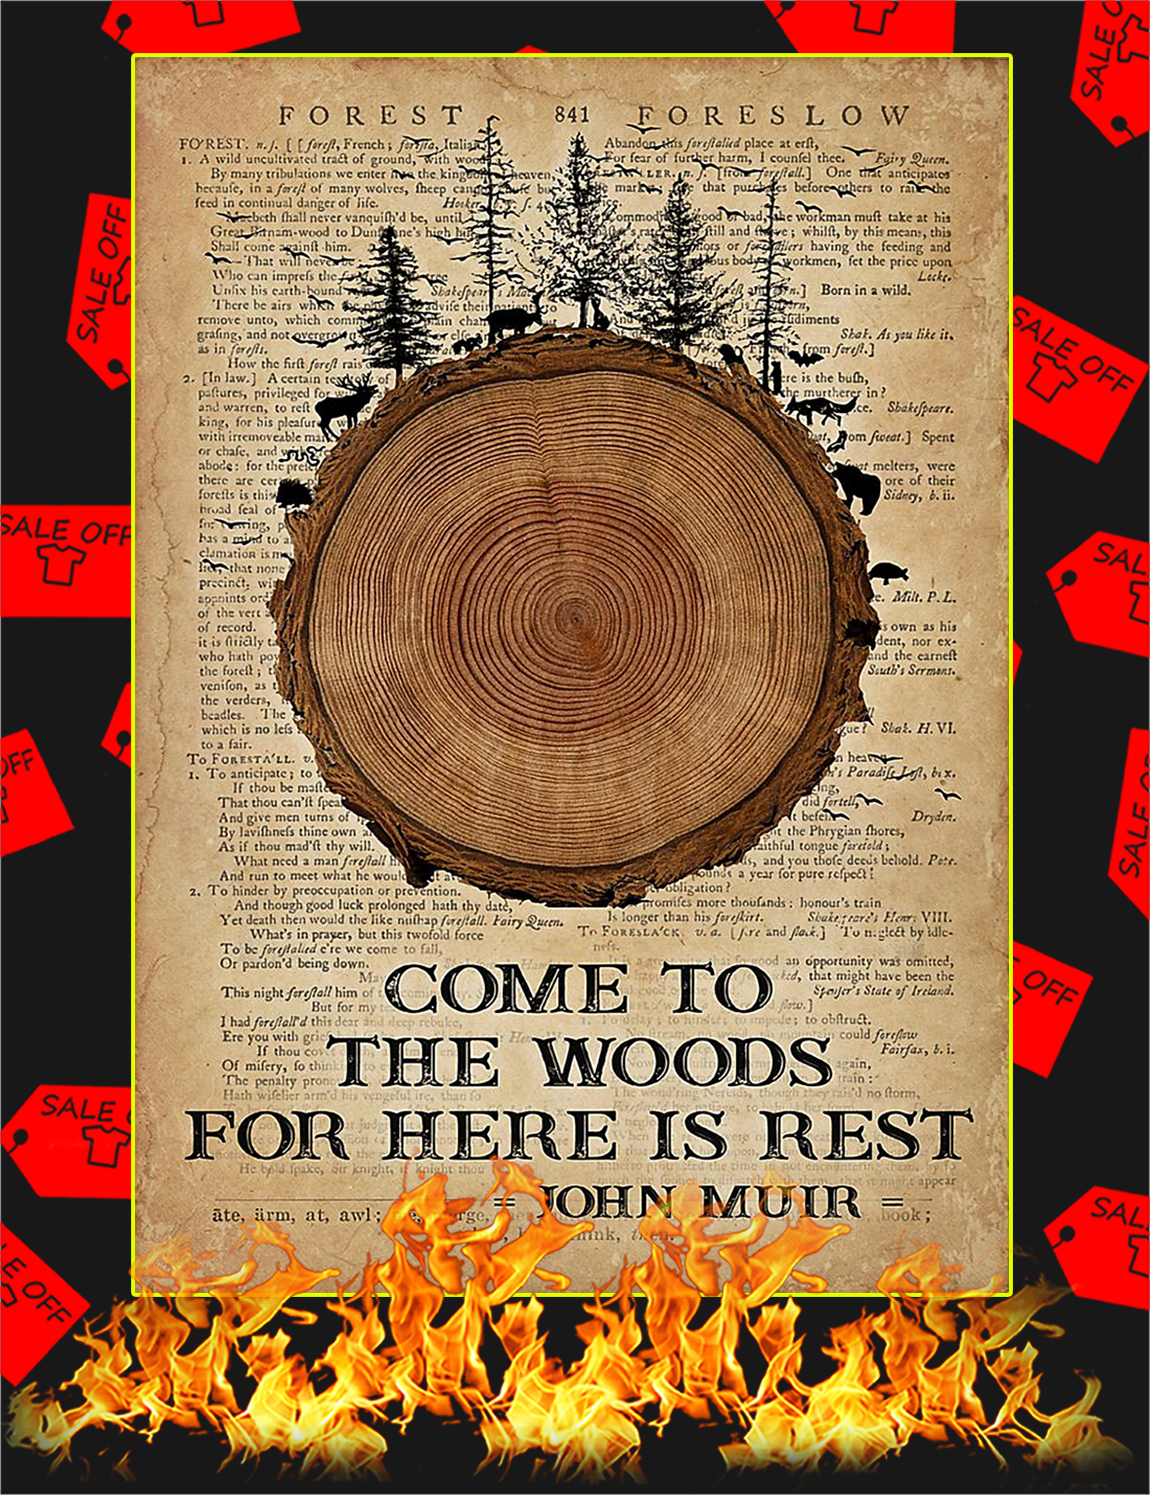 Come to the woods for here is rest poster - A3